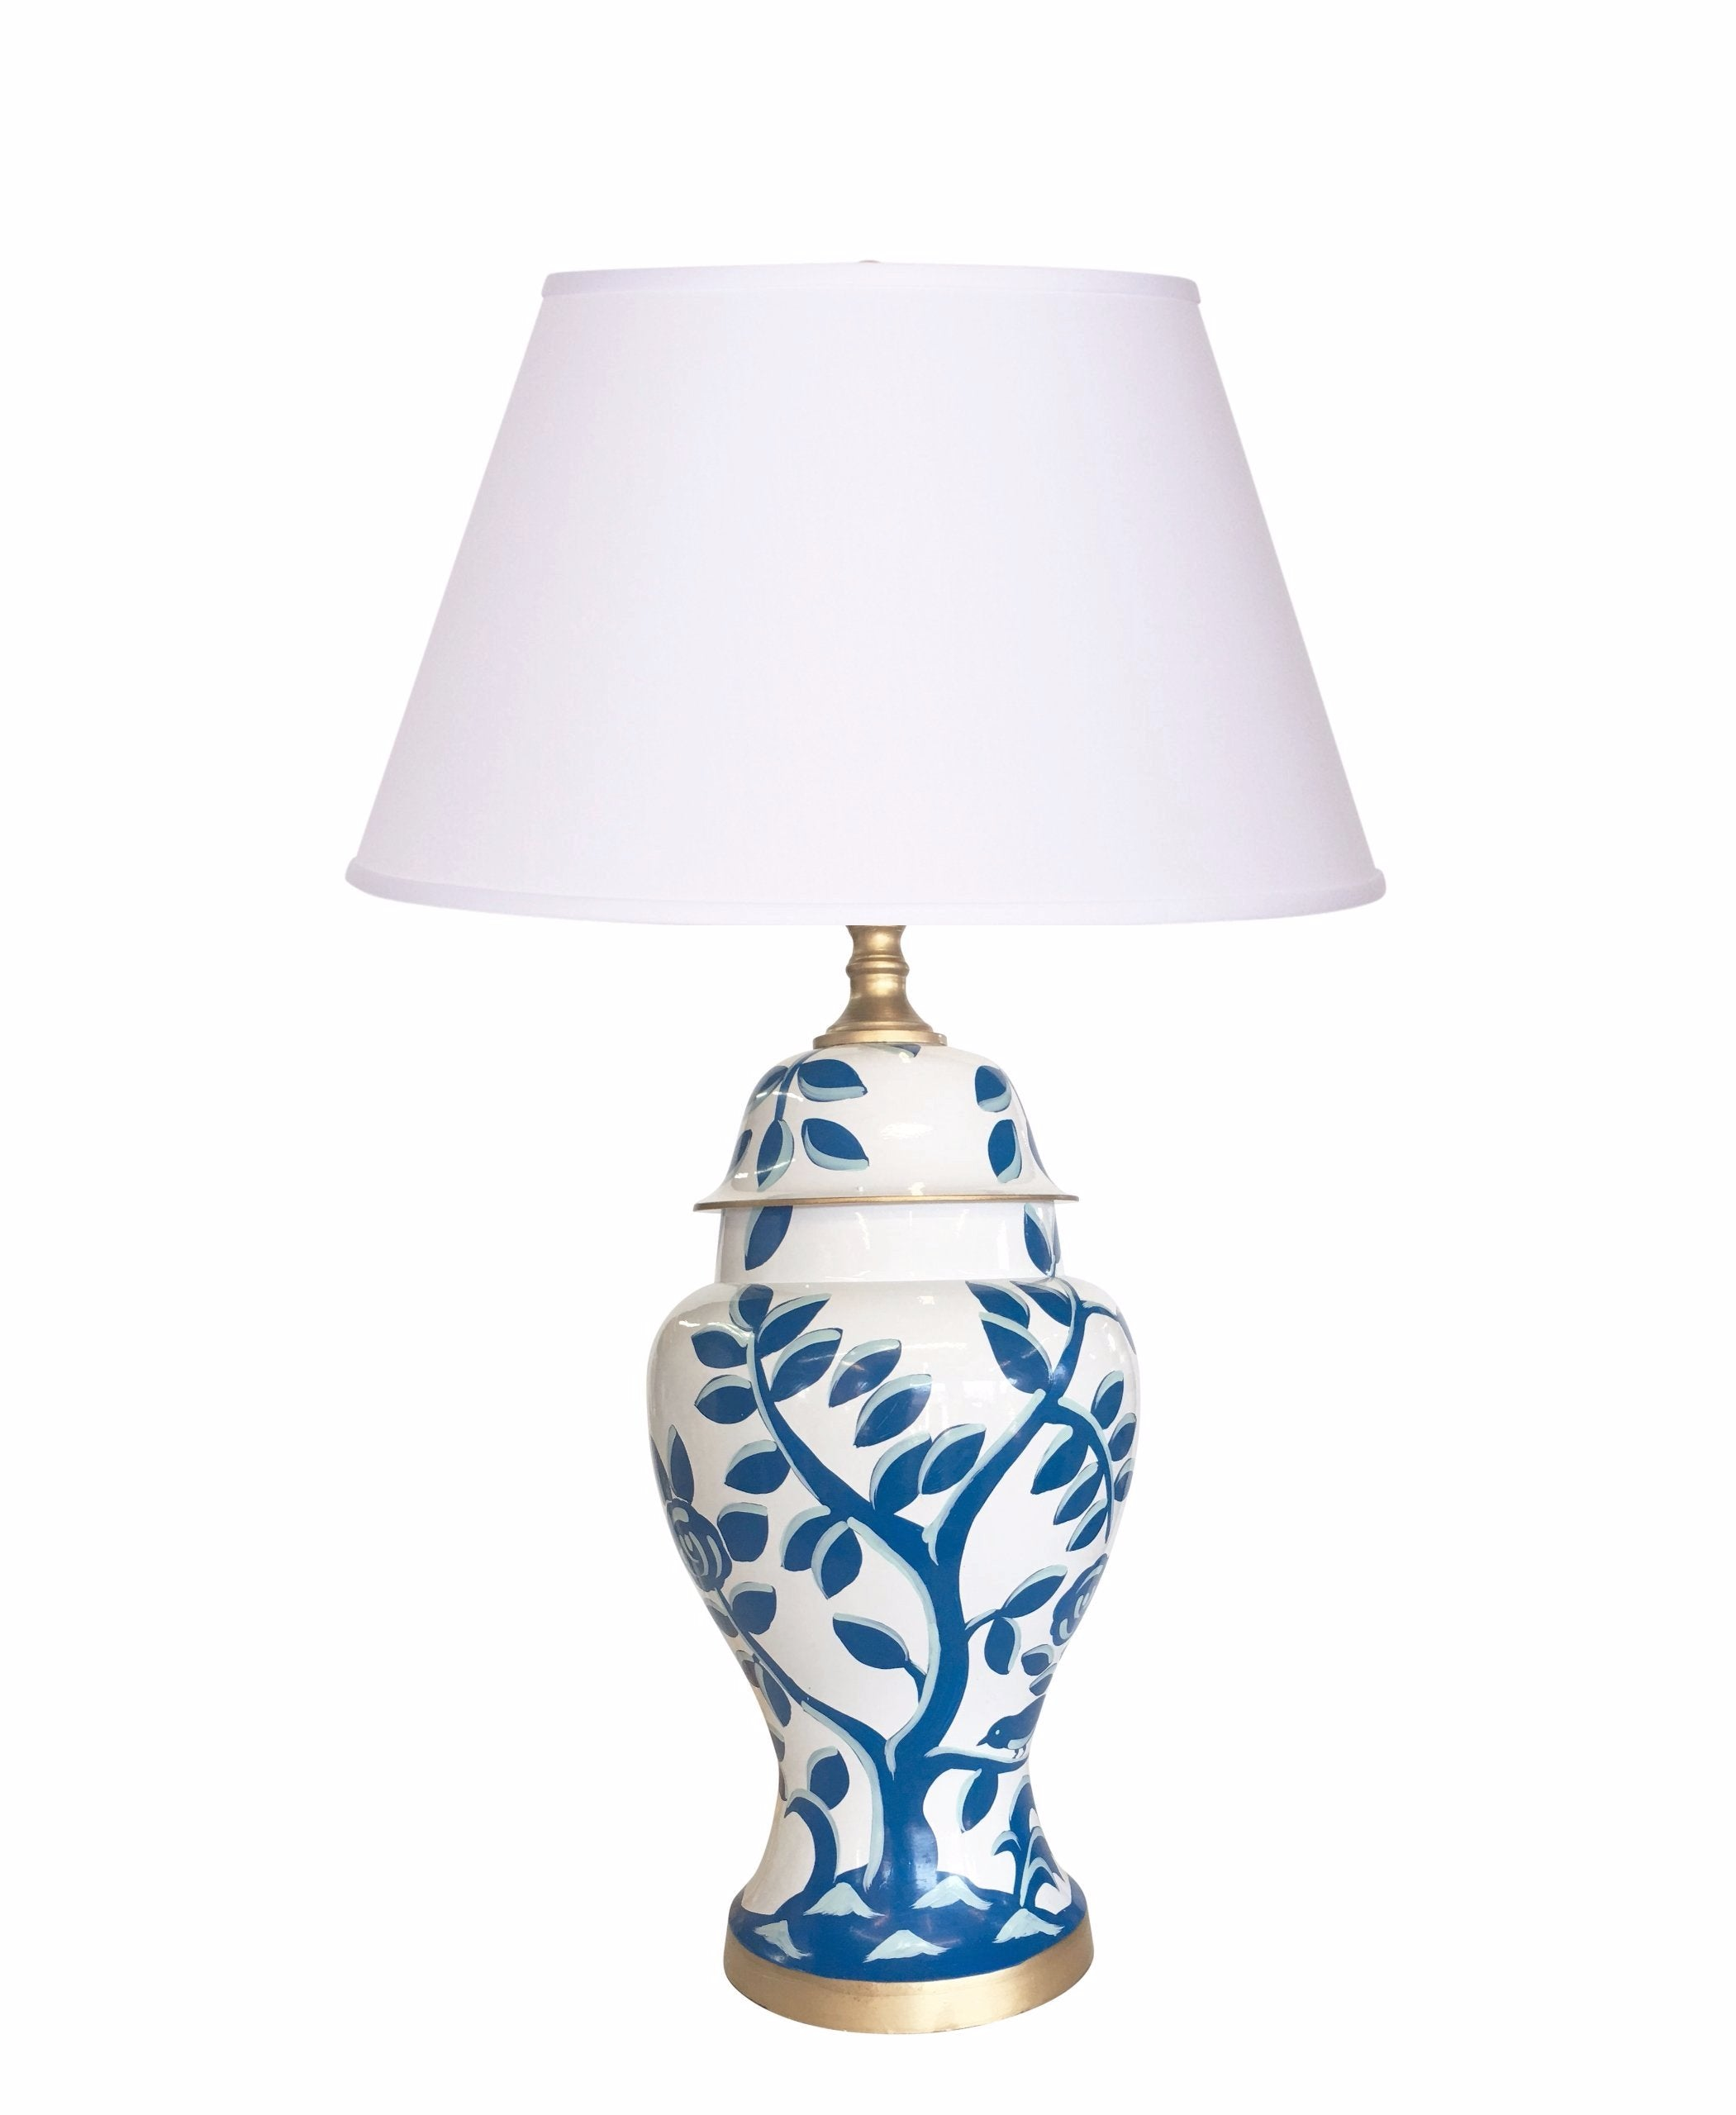 Cliveden in Blue Lamp